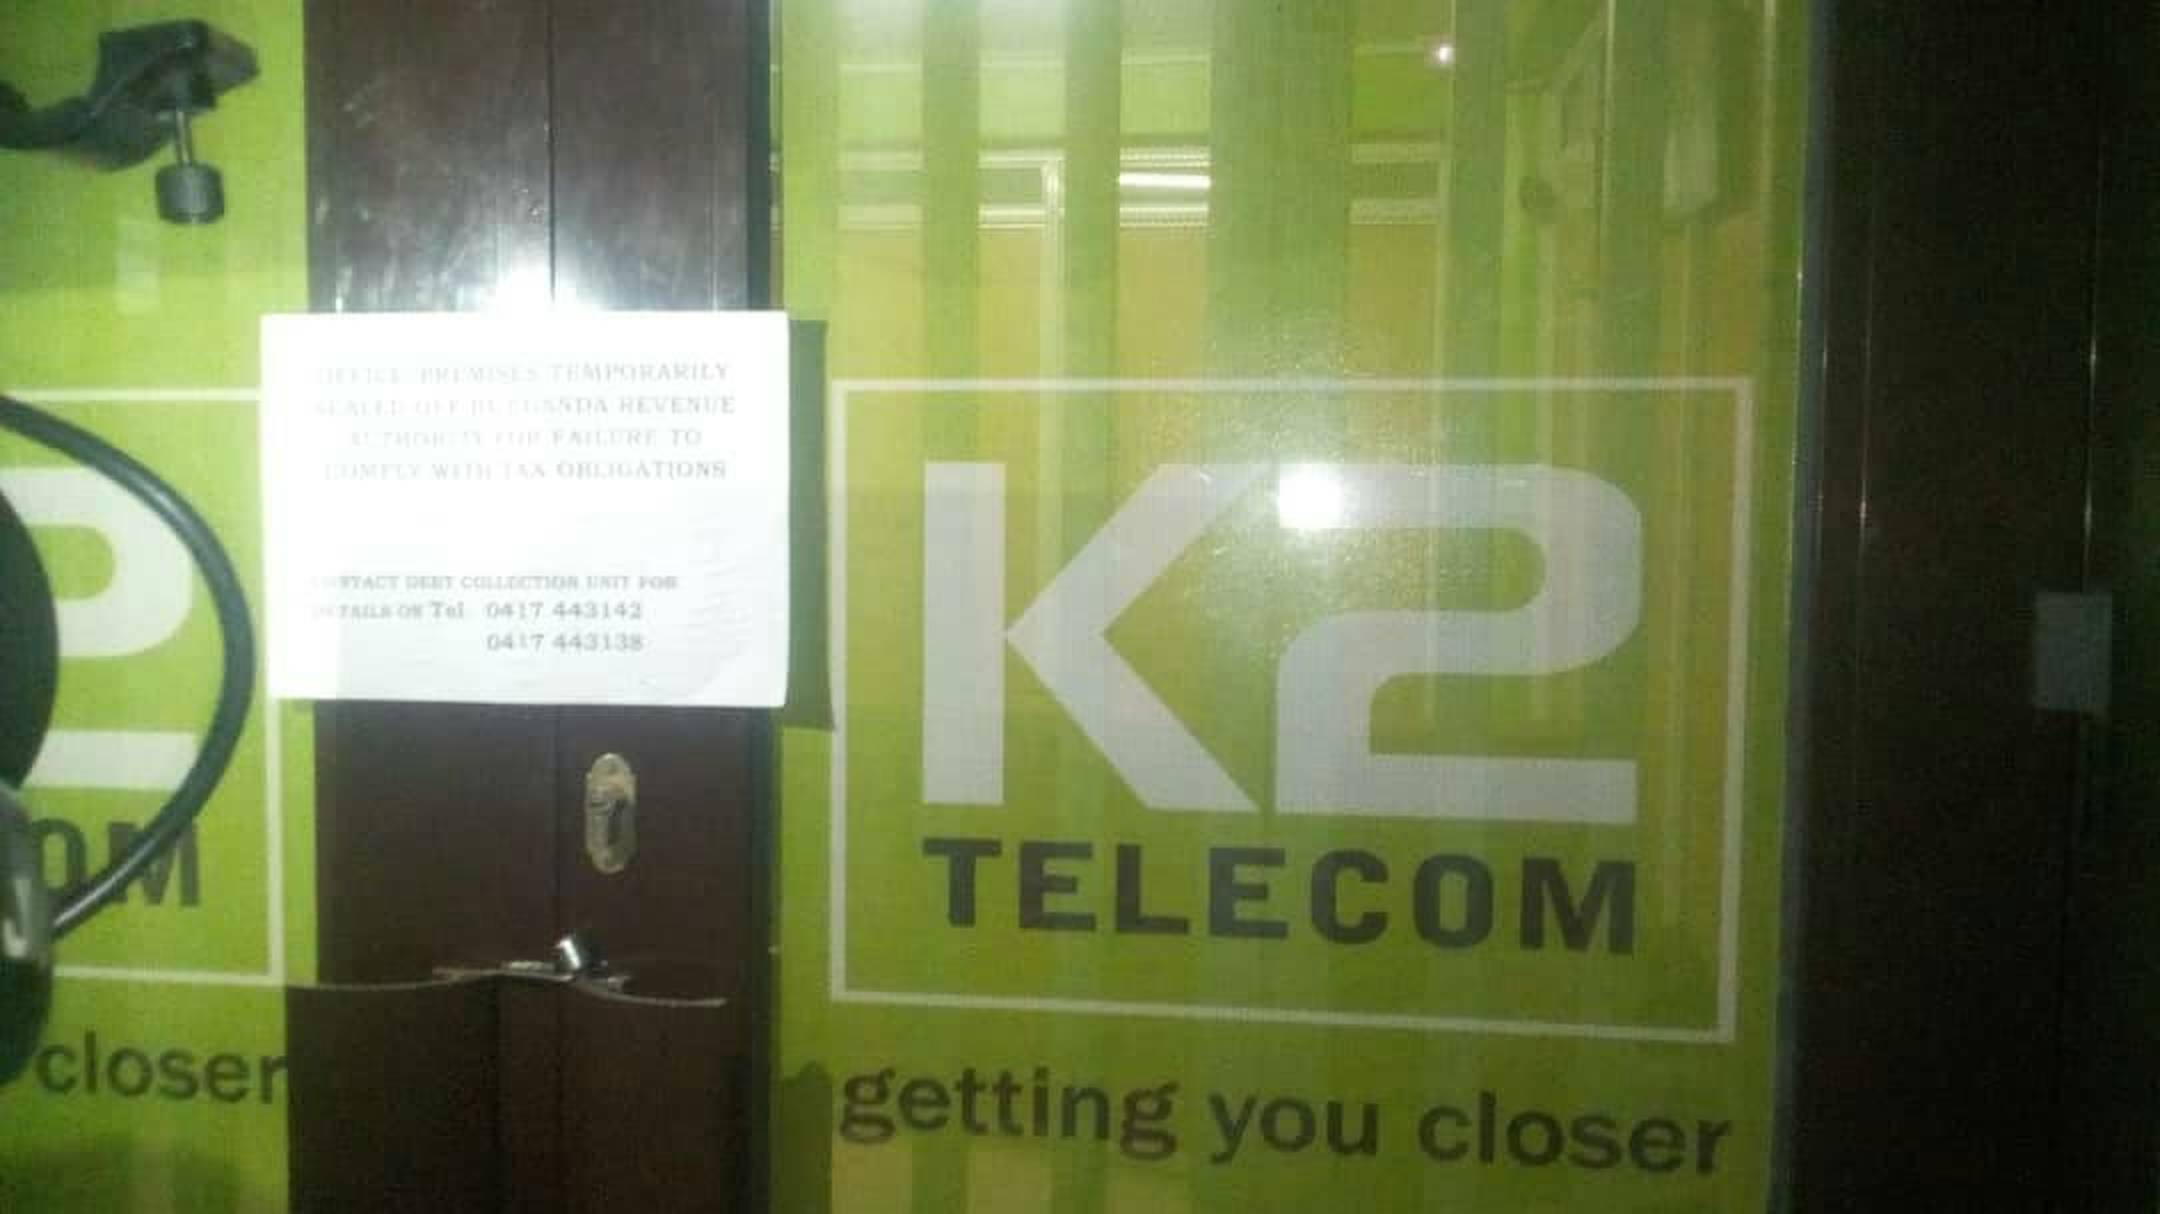 Buganda Kingdom claim URA used a discriminative taxation policy to close K2 telecom offices over failure to pay Shs77.8m as PAYE in May 2018 (FILE PHOTO)